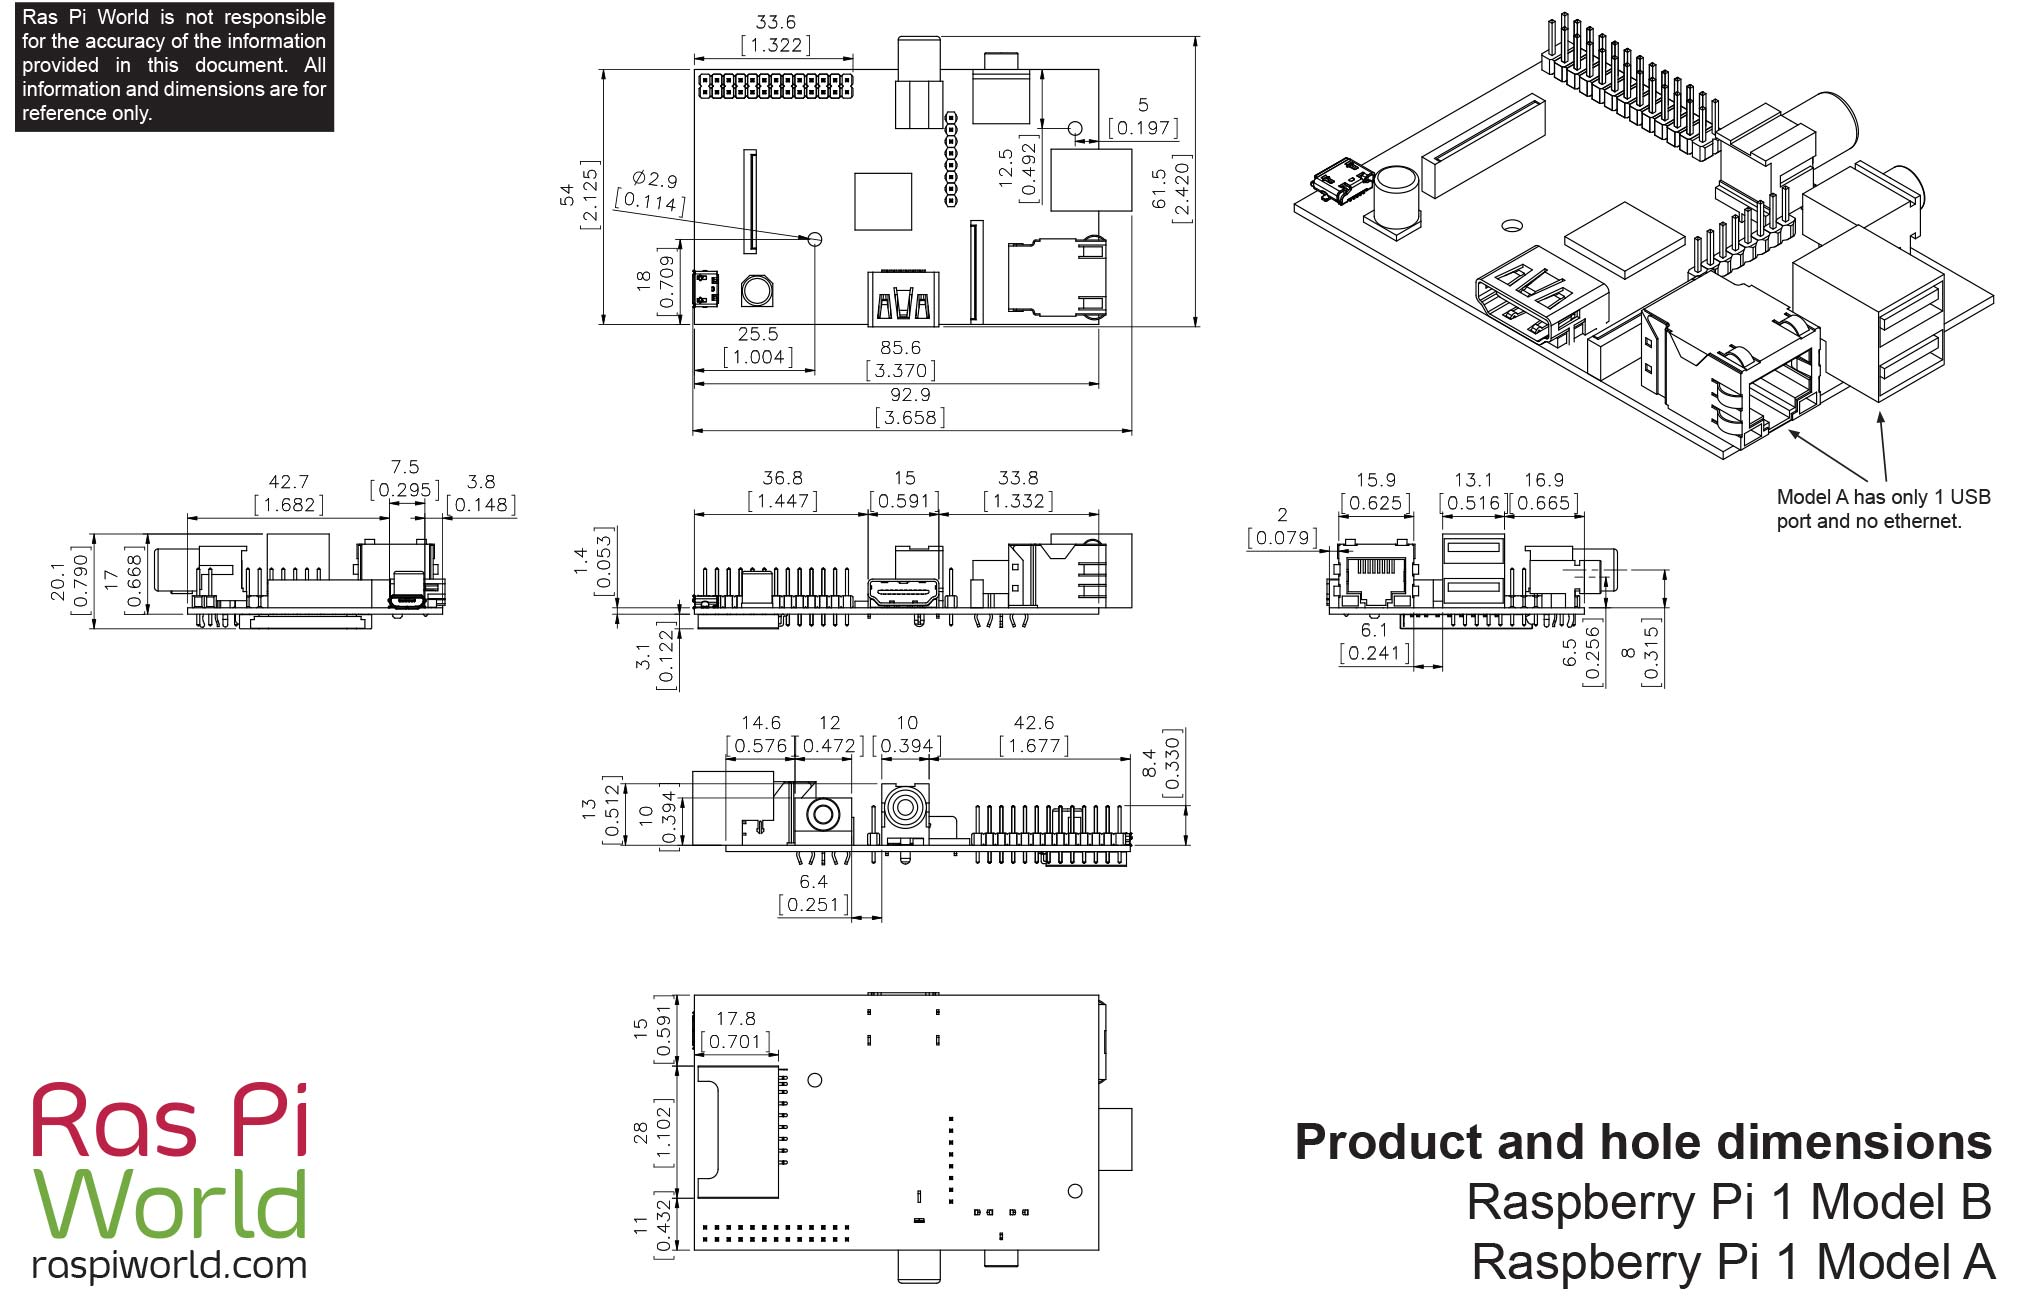 All Raspberry Pi Products Diion Drawings - Ras Pi World on